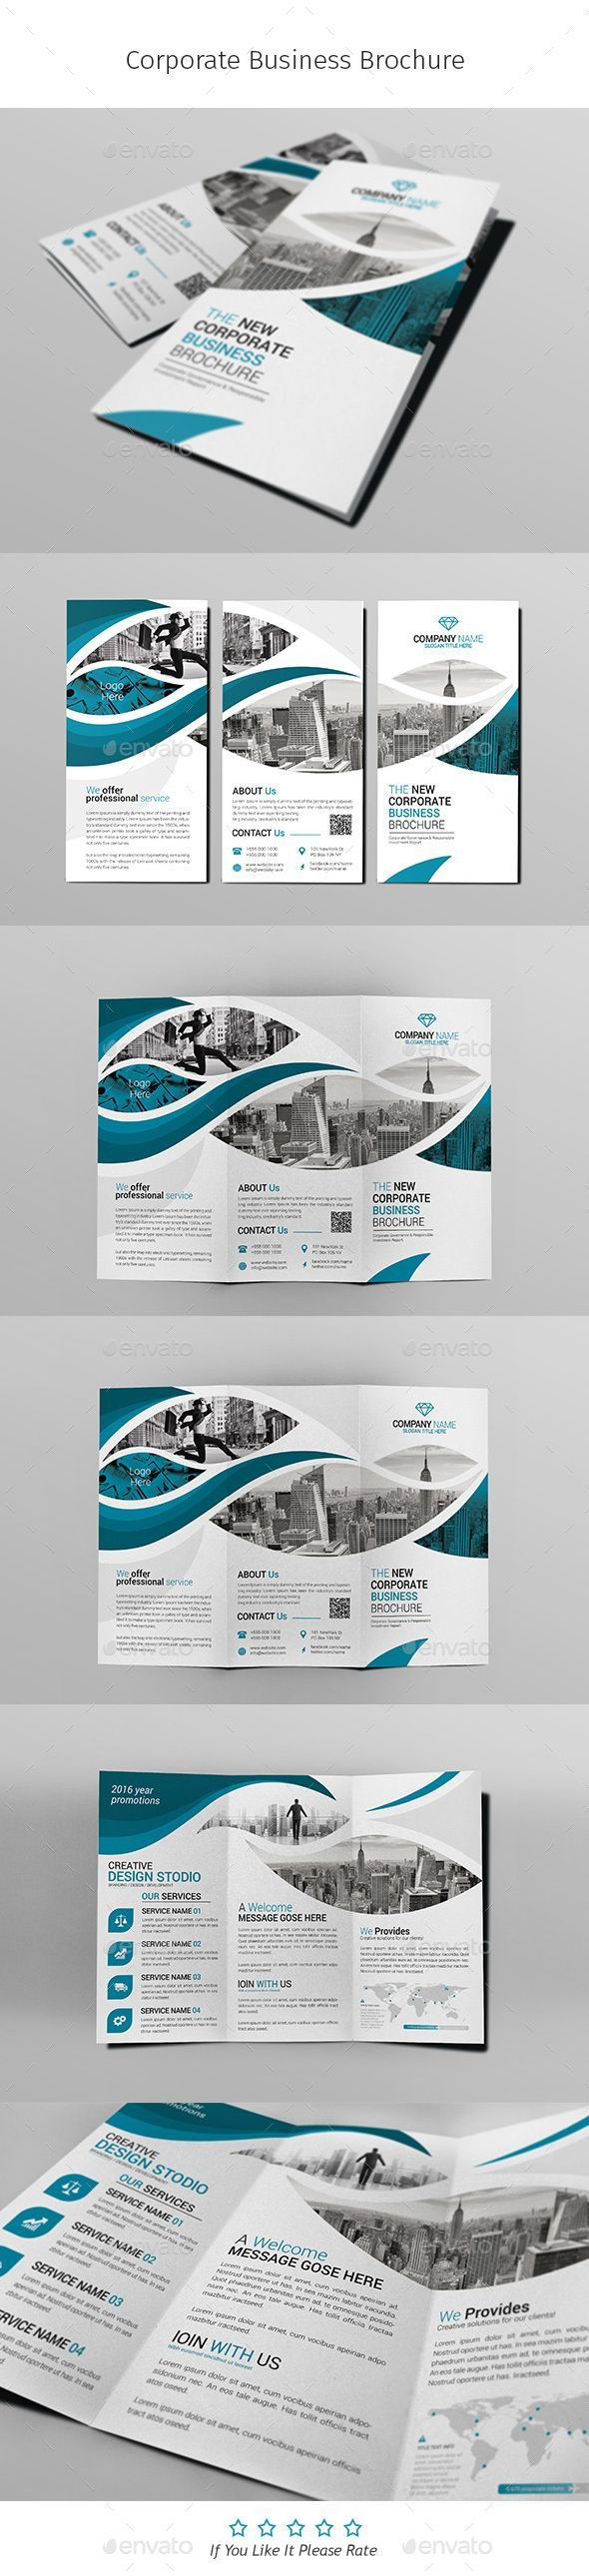 A4 Corporate Business Flyer Template PSD. Download here: http://graphicriver.net/item/a4-corporate-business-flyer-template-vol-01/14813495?ref=ksioks